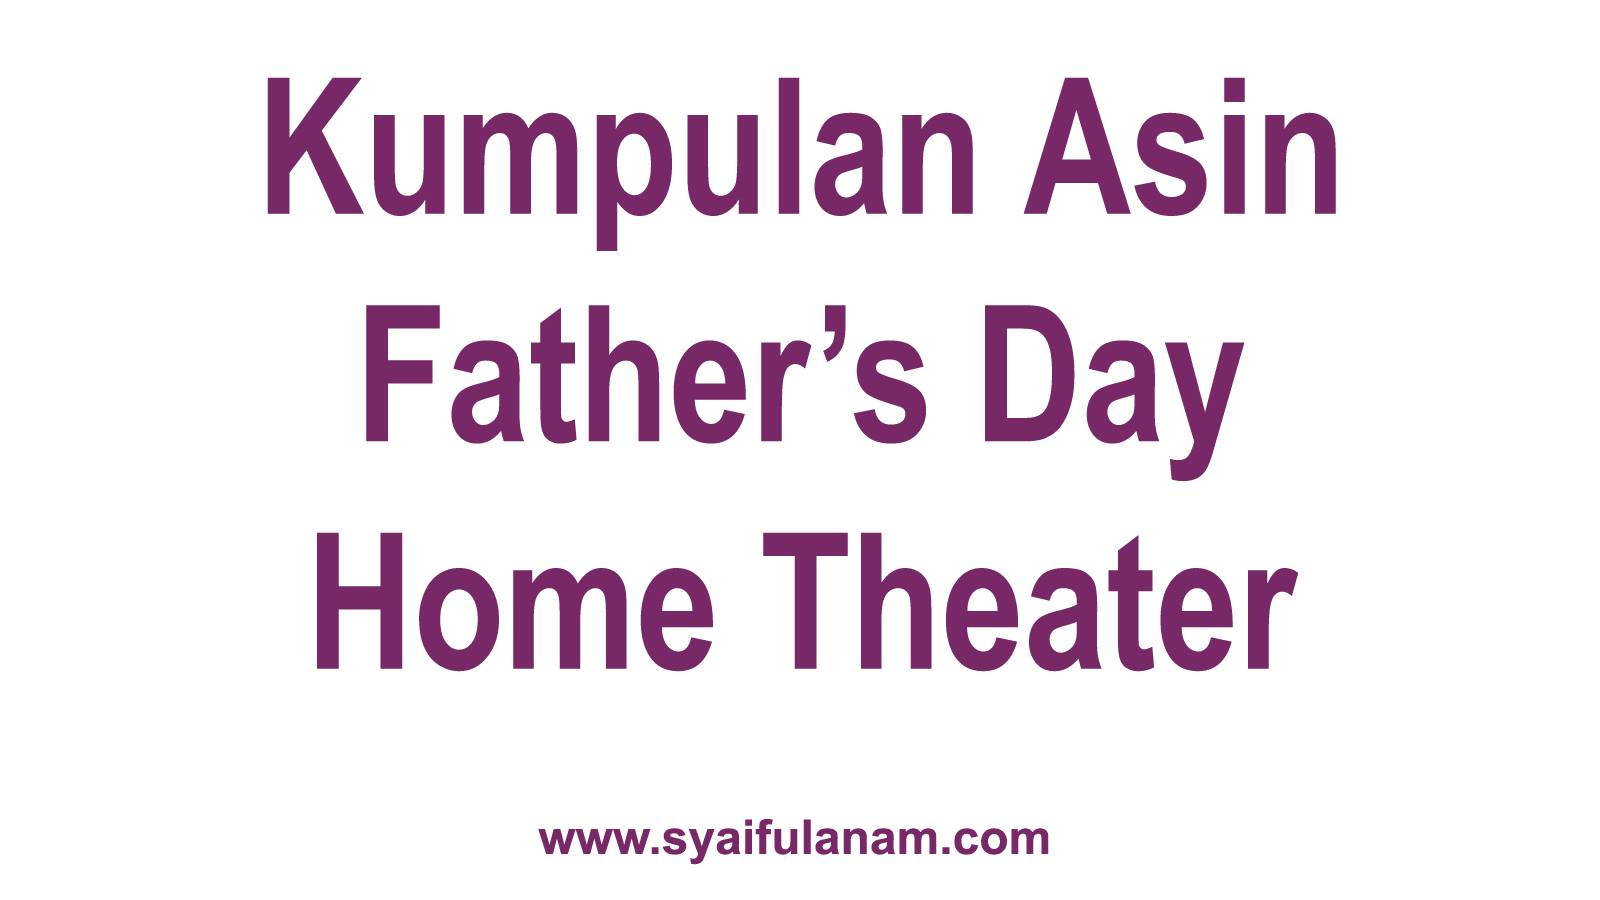 Kumpulan Asin Father's Day Home Theater